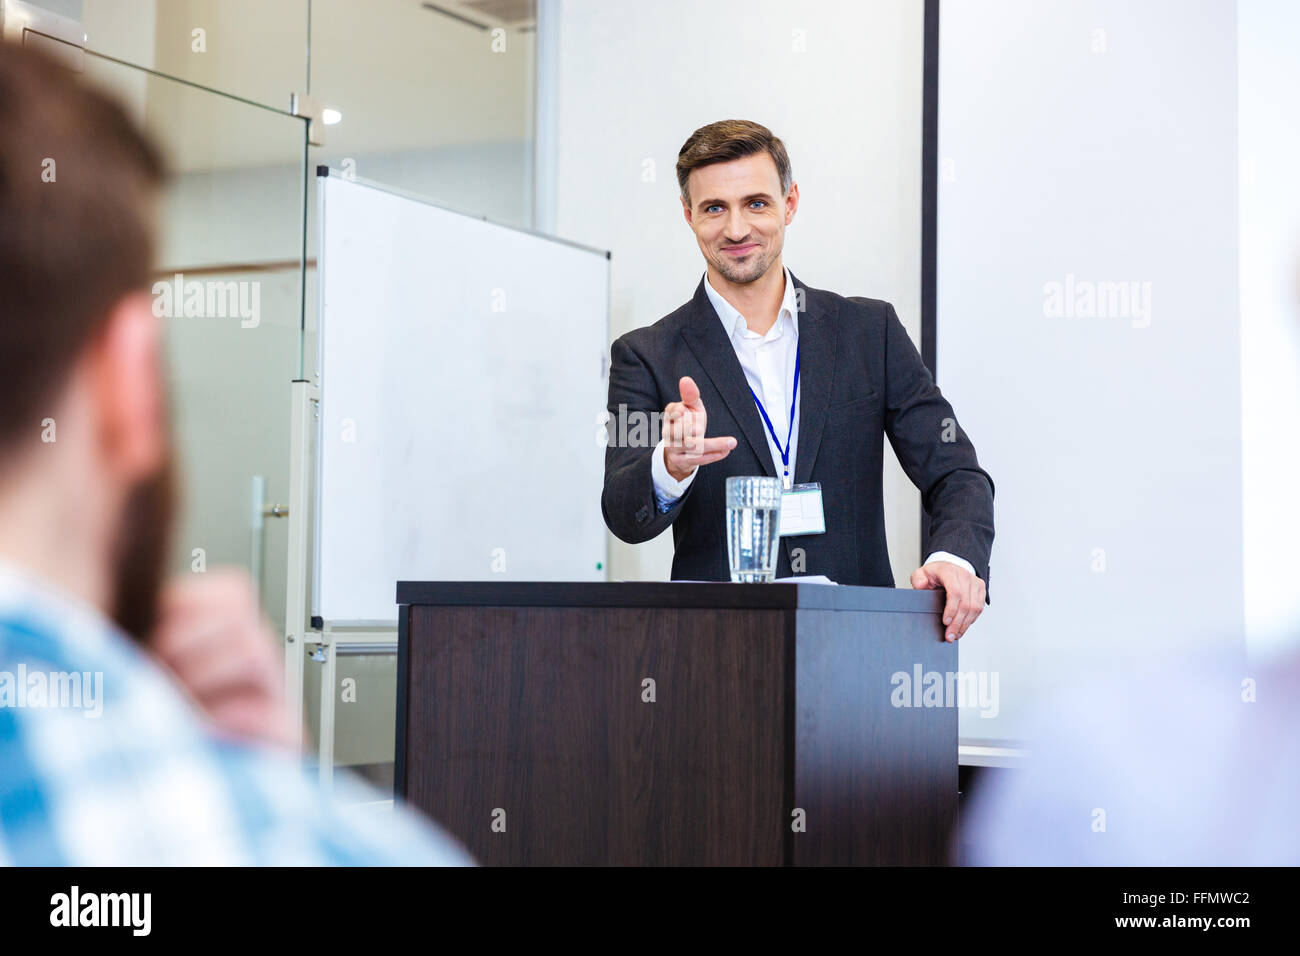 Smiling handsome businessman standing at tribune in conference hall and pointing in audience - Stock Image